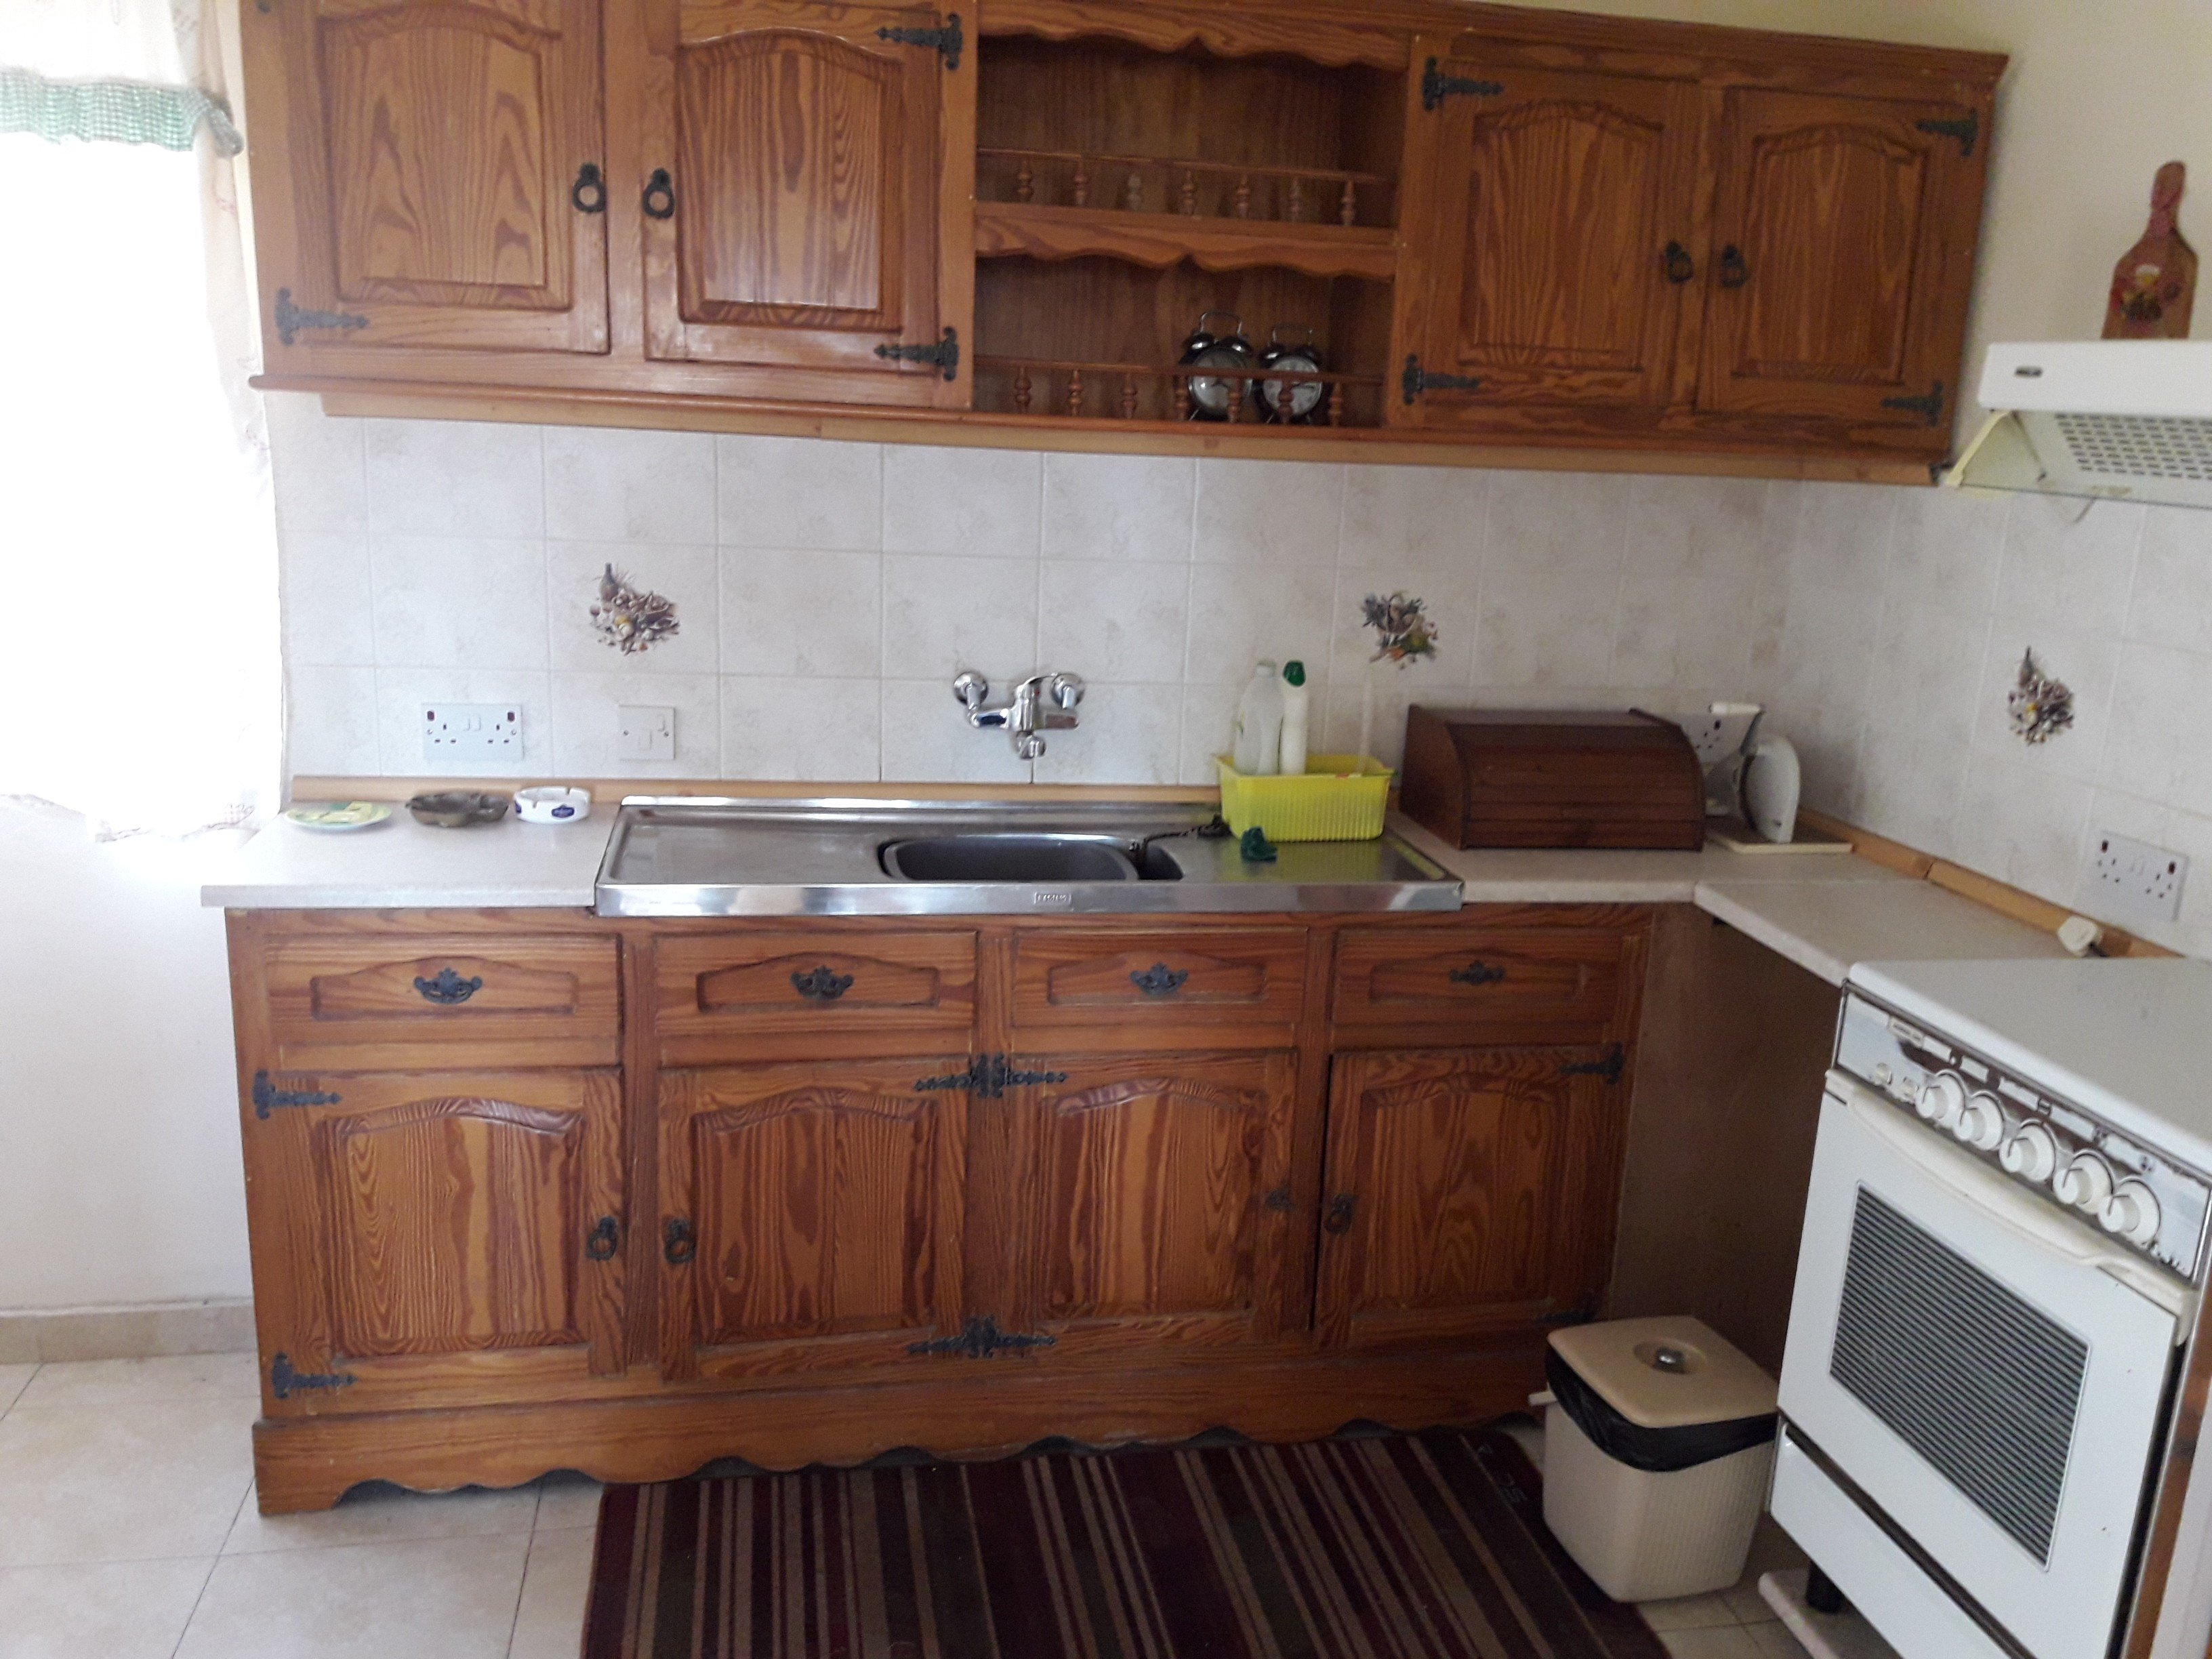 Property Malta: Apartment with 1 bedroom for sale in ...